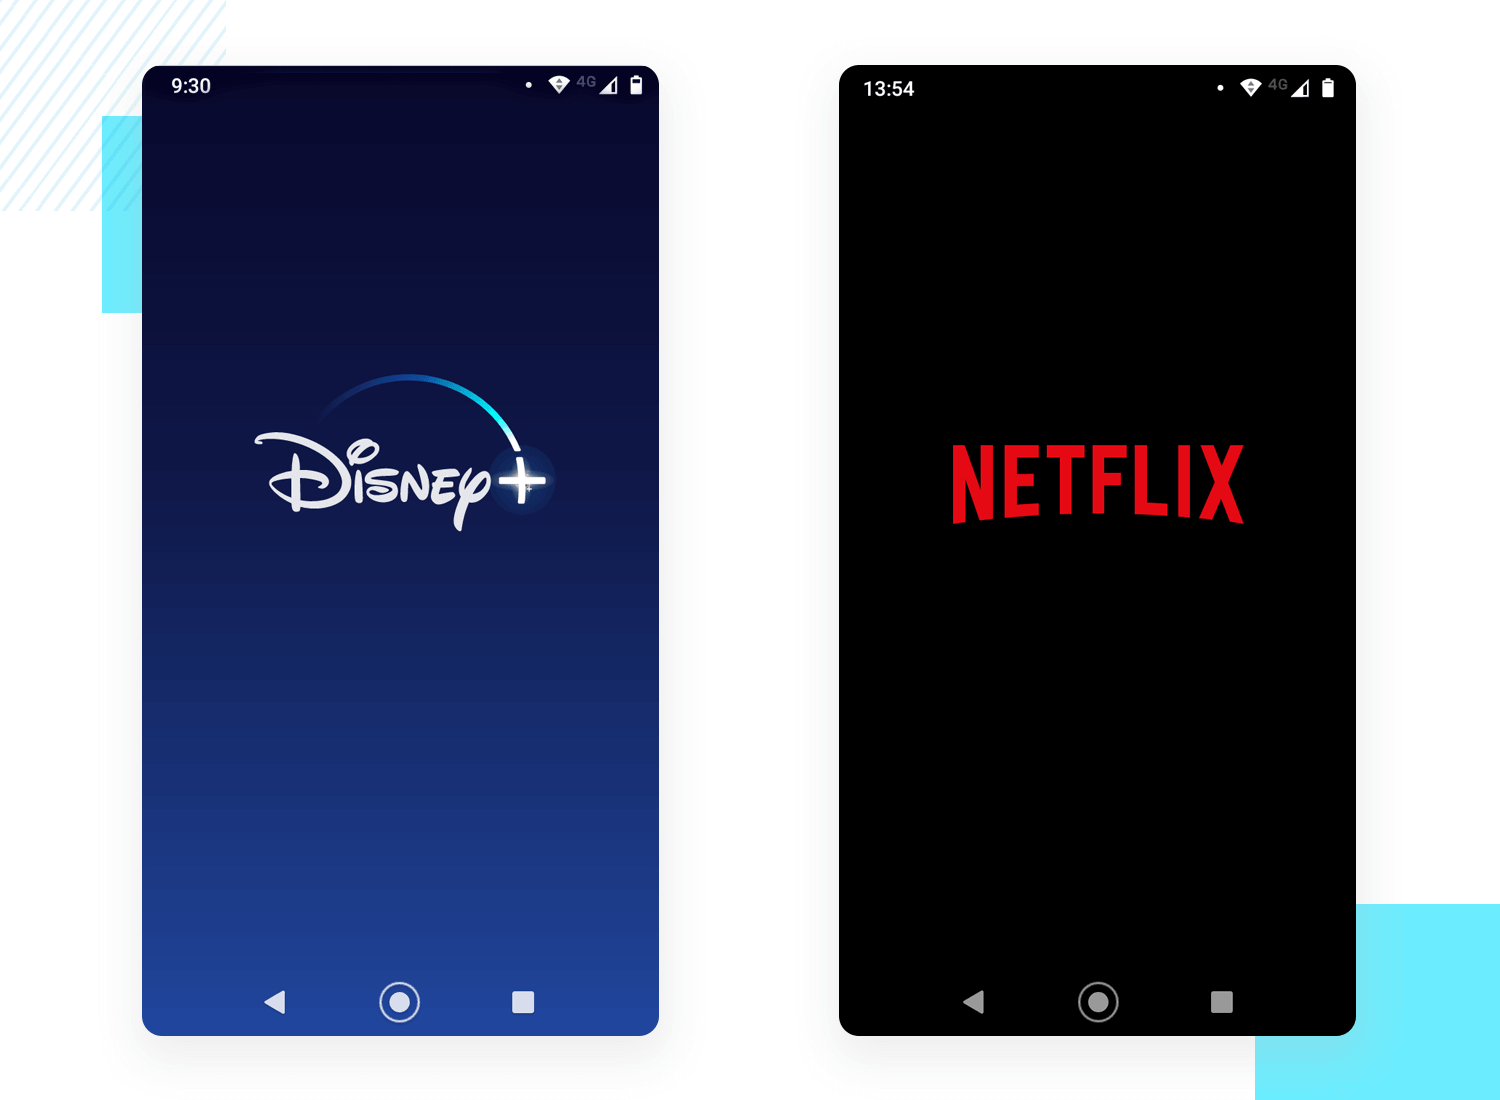 splash screen designs by streaming services disney+ and netflix